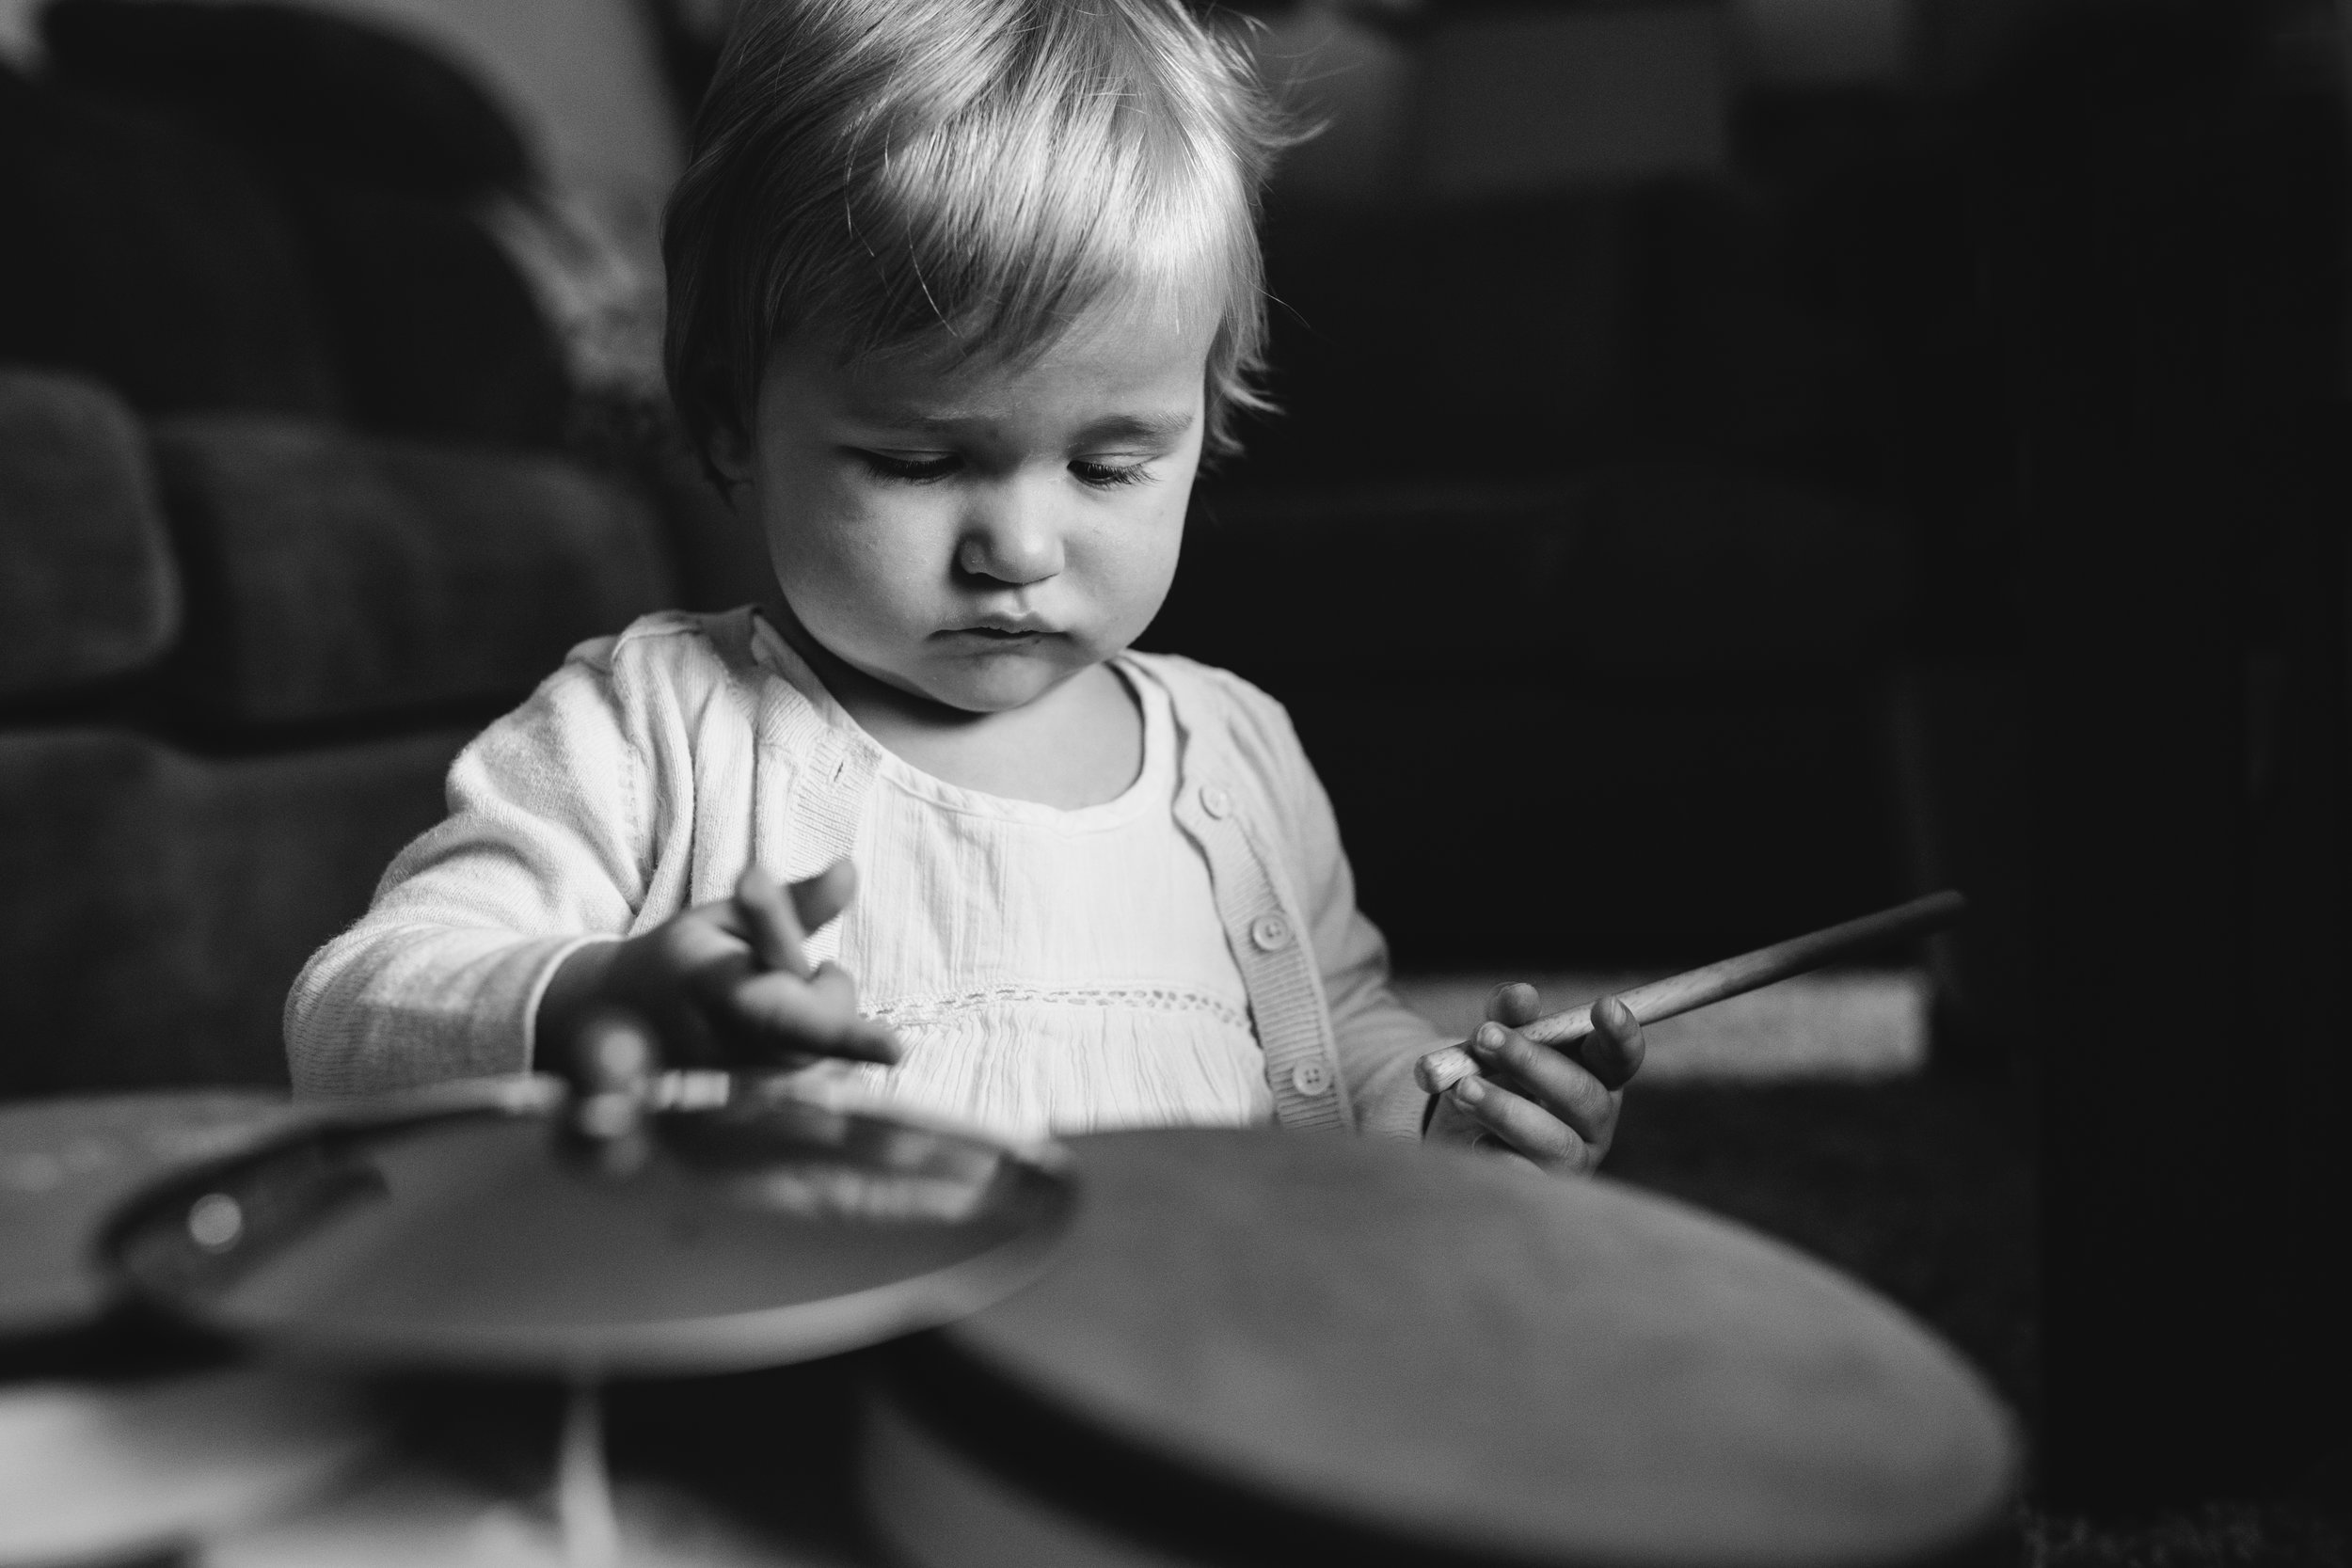 1 year old baby girl playing with toy drum set - Uxbridge child photography